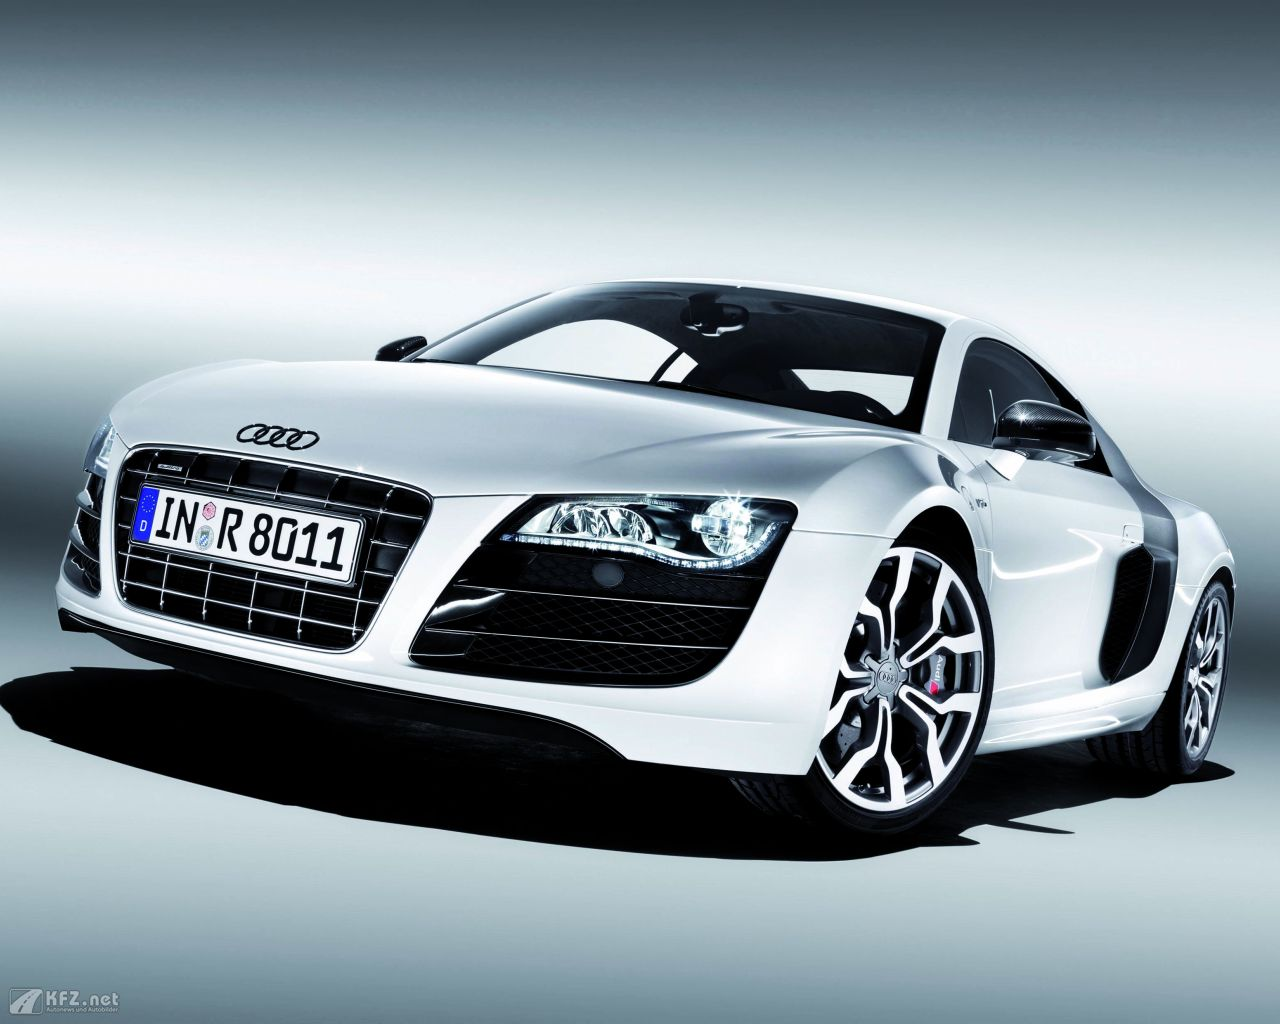 audi r8 bilder fotos vom mittelmotor sportwagen r8 mit singleframe grill. Black Bedroom Furniture Sets. Home Design Ideas